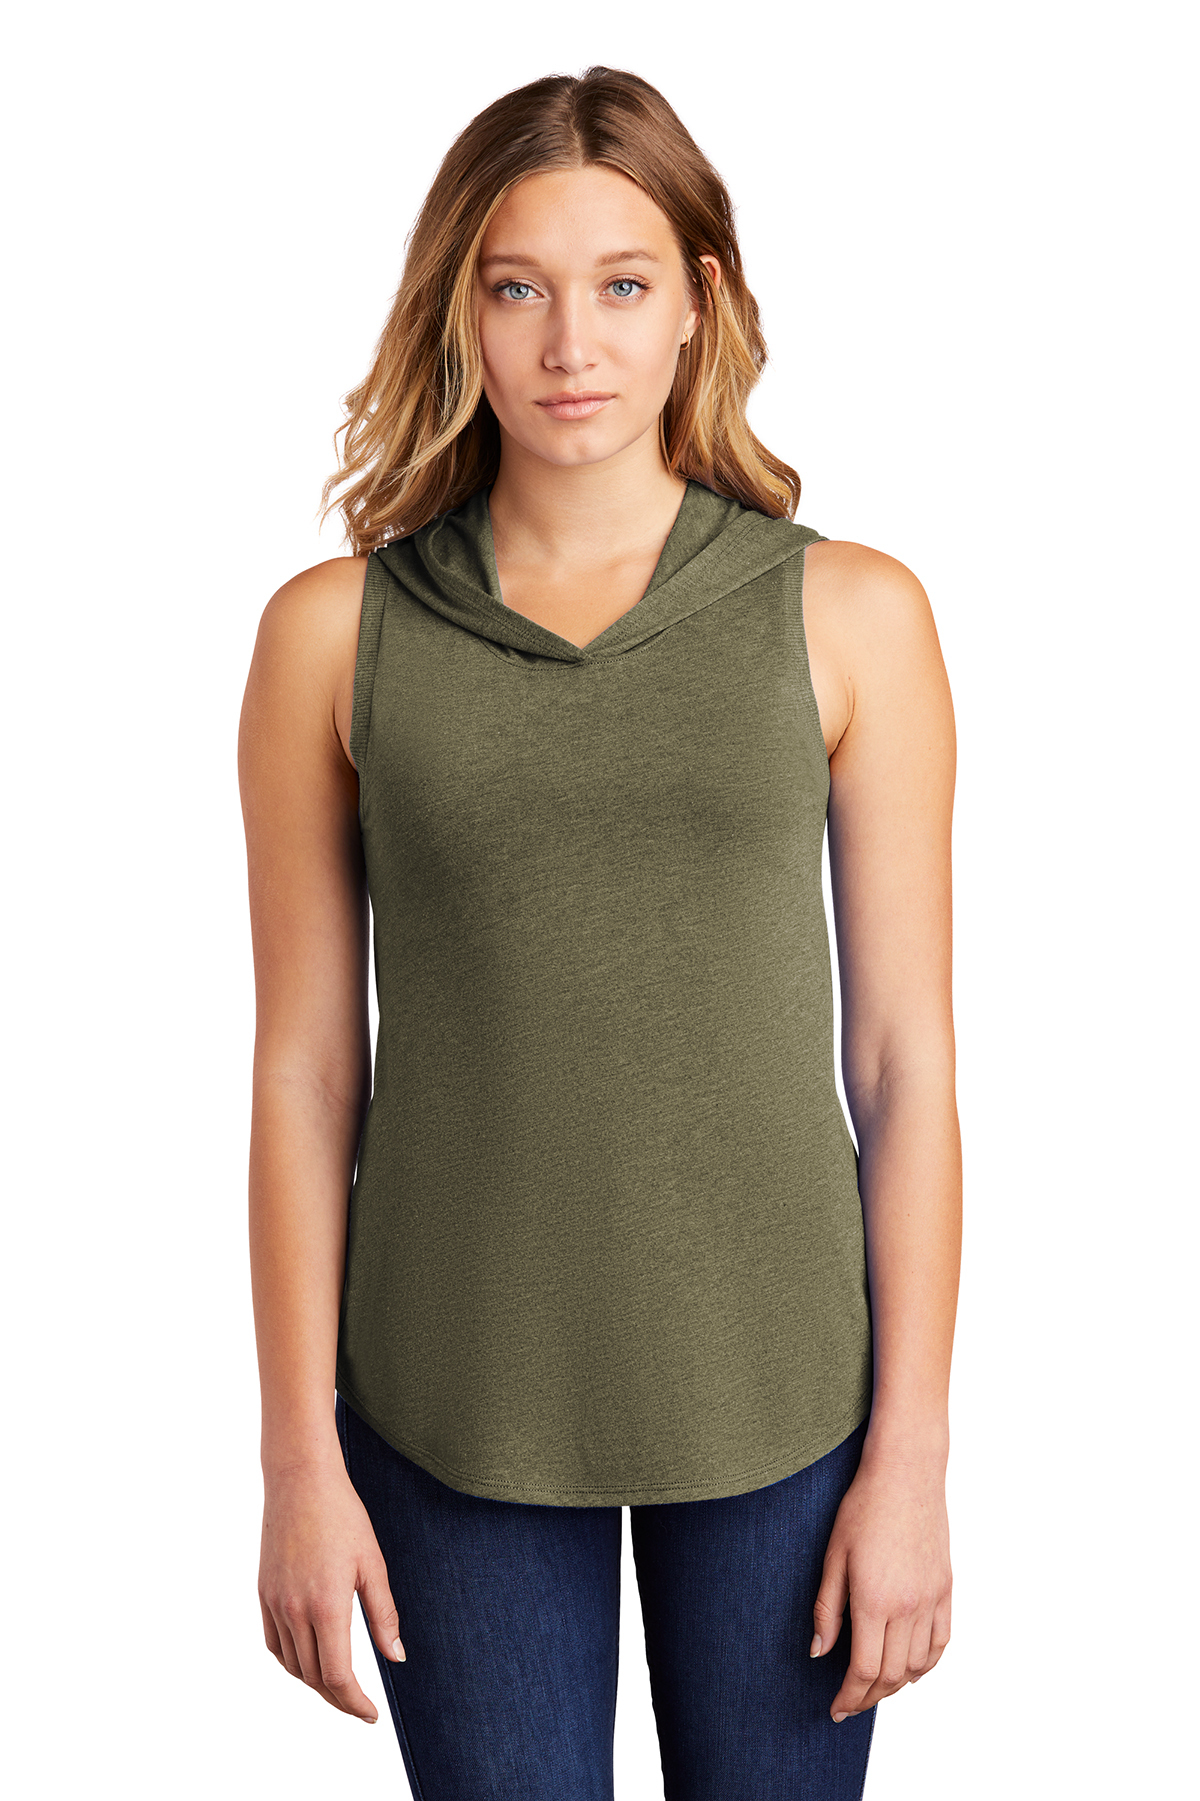 District DT1375 - Women's Perfect Tri Sleeveless Hoodie